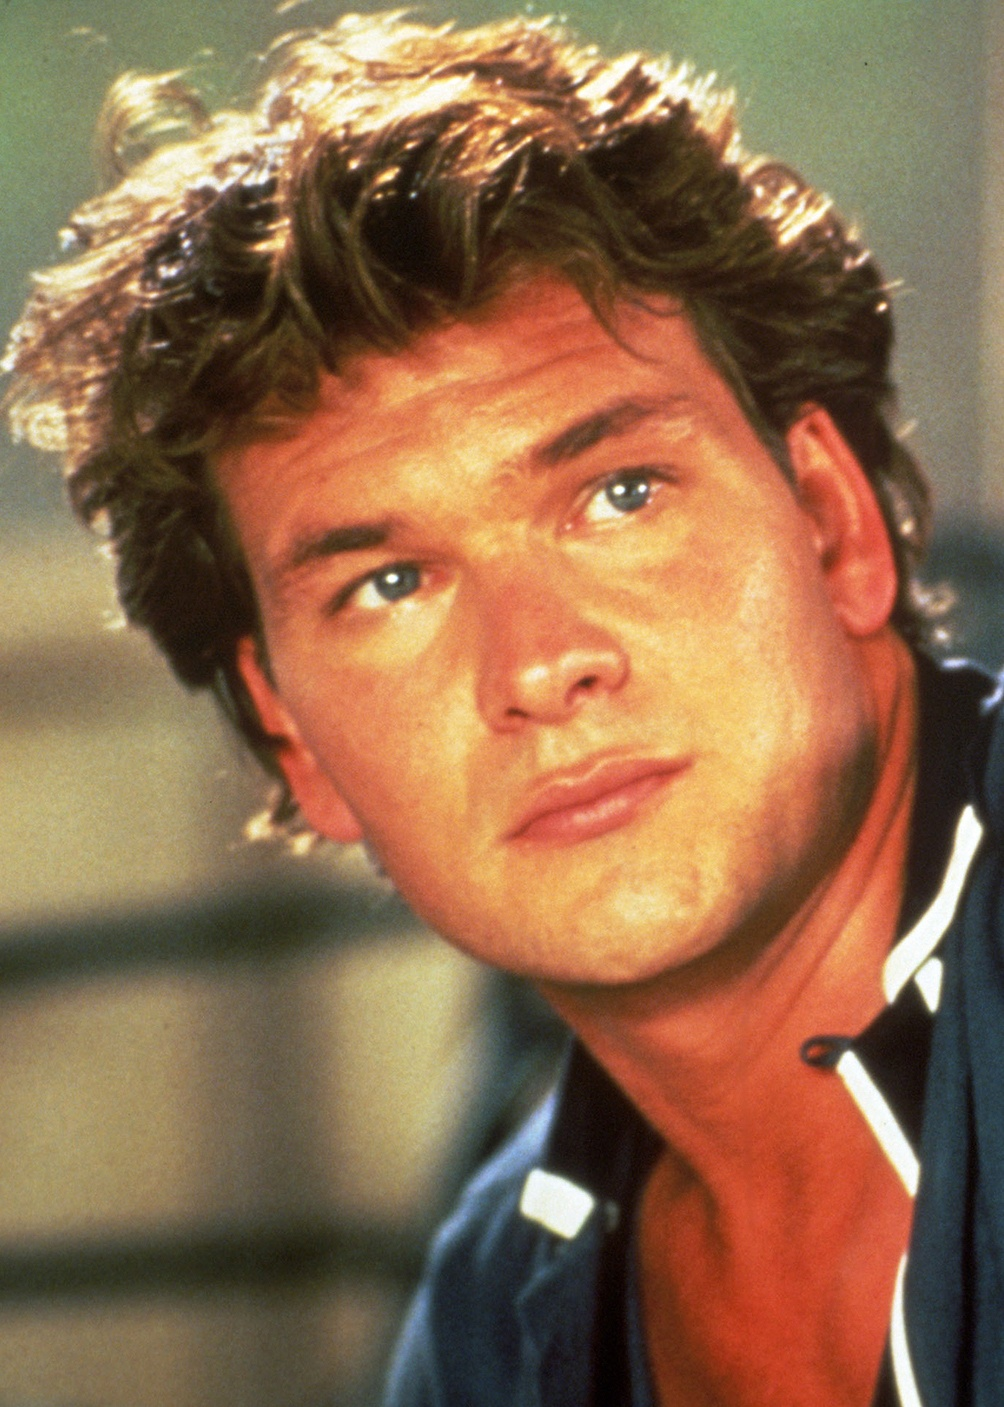 patrick swayze dirty dancing today 160224 d2ff1a4e11687f9bb678b385d2aeceea 30 Things You Probably Didn't Know About Dirty Dancing